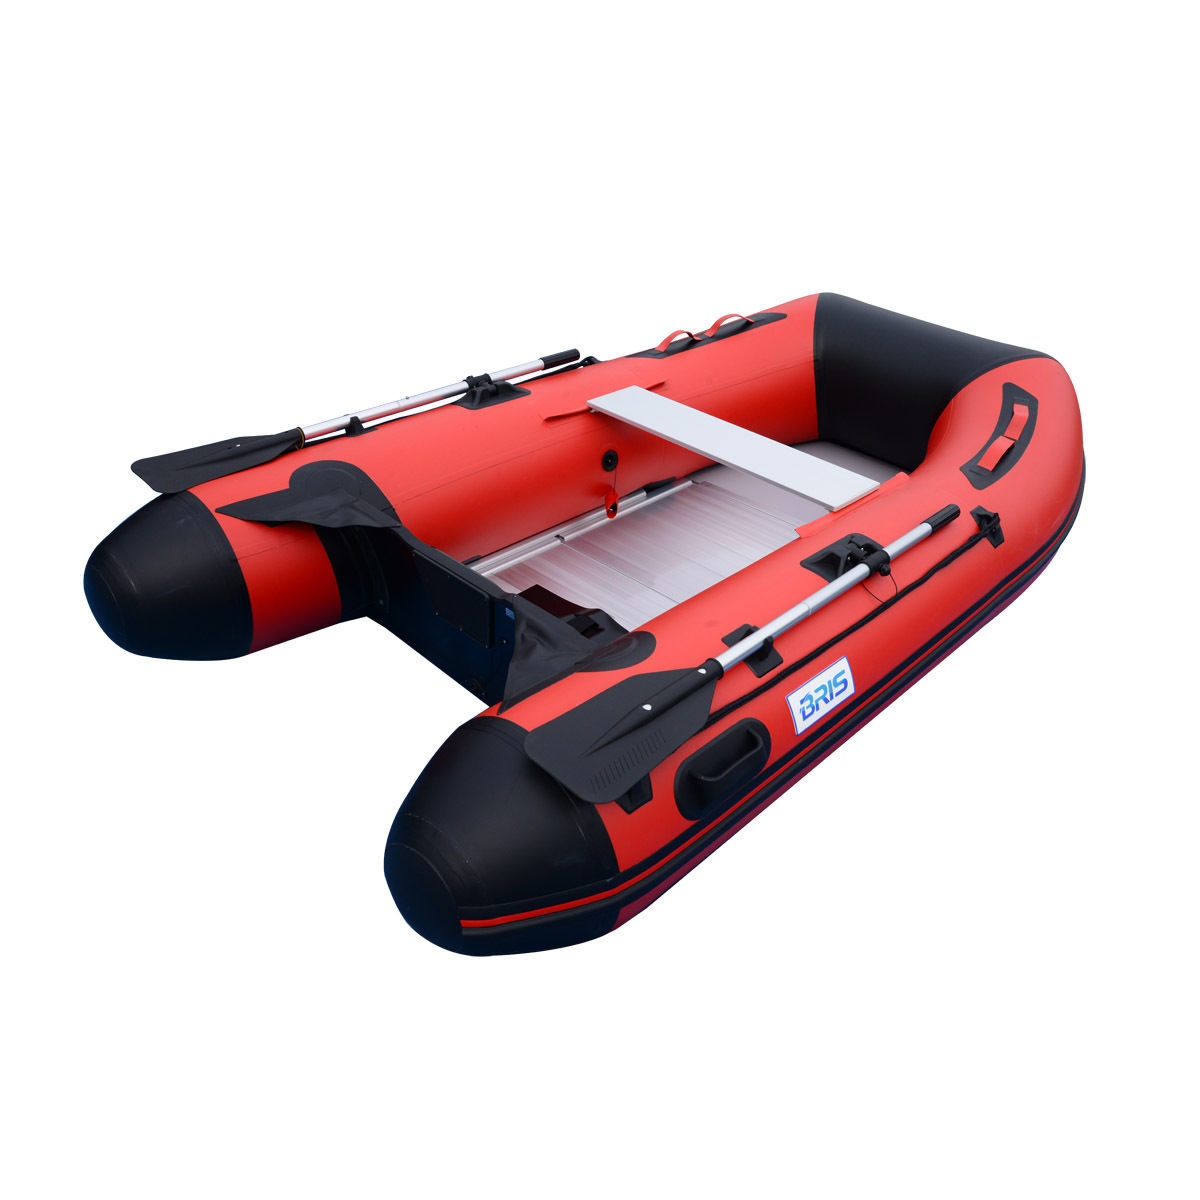 BRIS 8.8ft Inflatable Boat For Fishing Inflatable Tender Dinghy Pontoon Raft